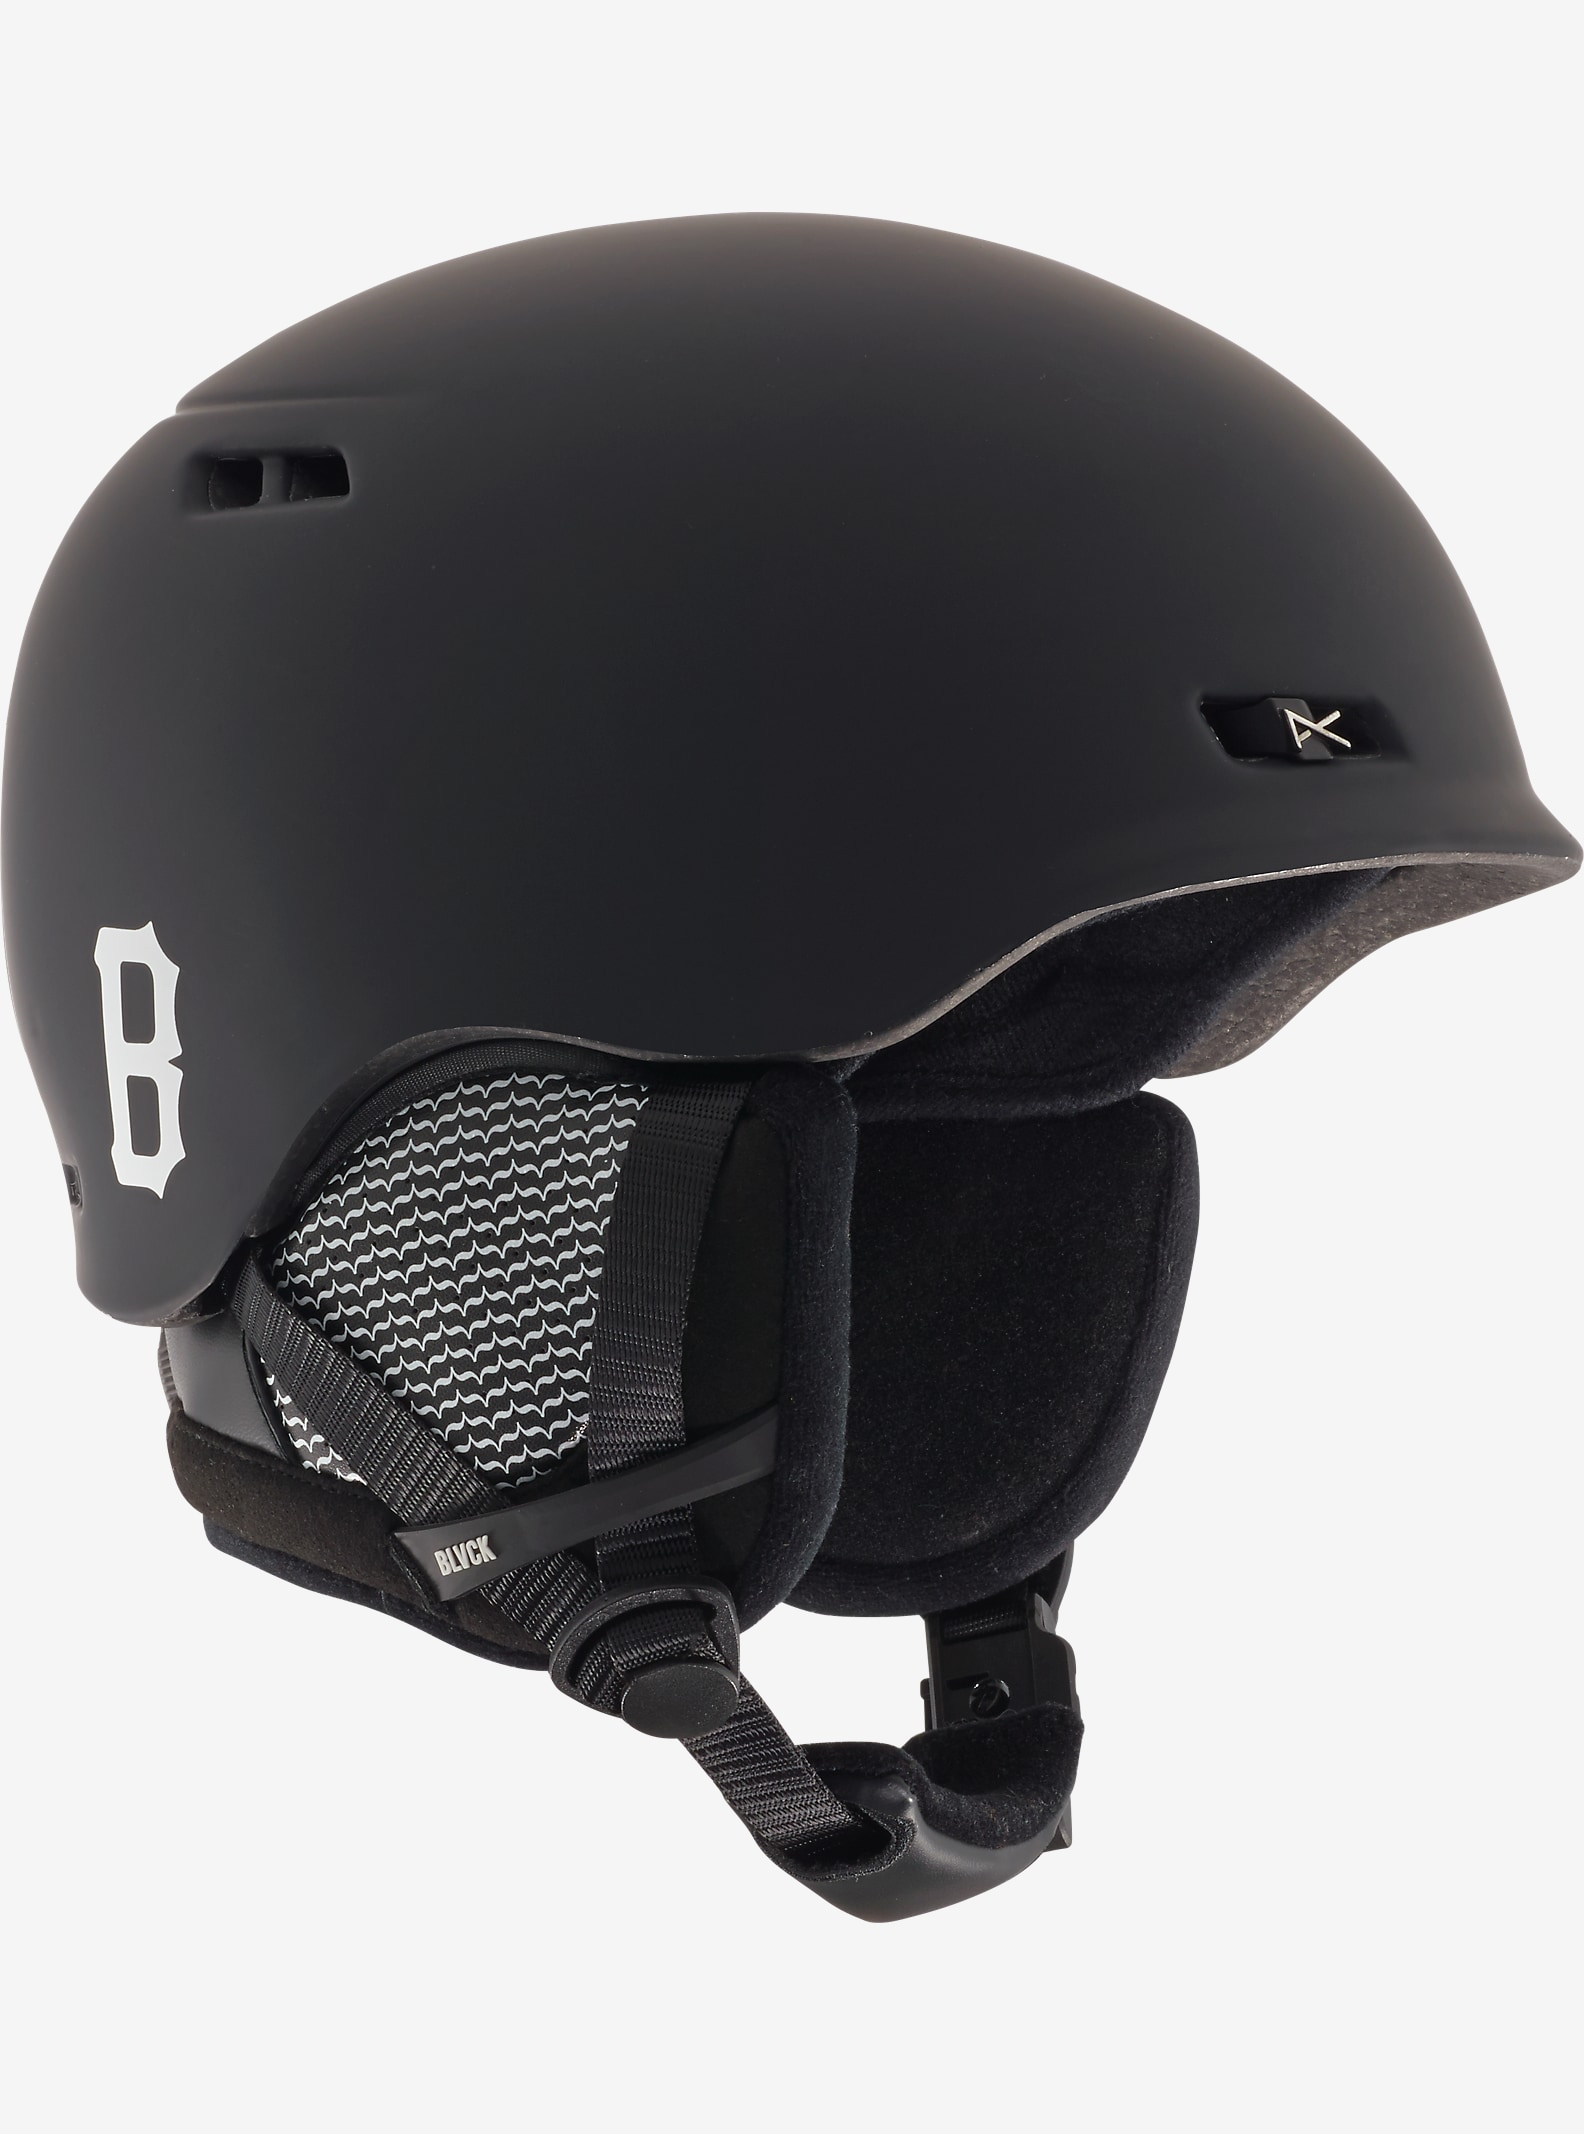 Black Scale x anon. Rodan Helm angezeigt in Black Scale